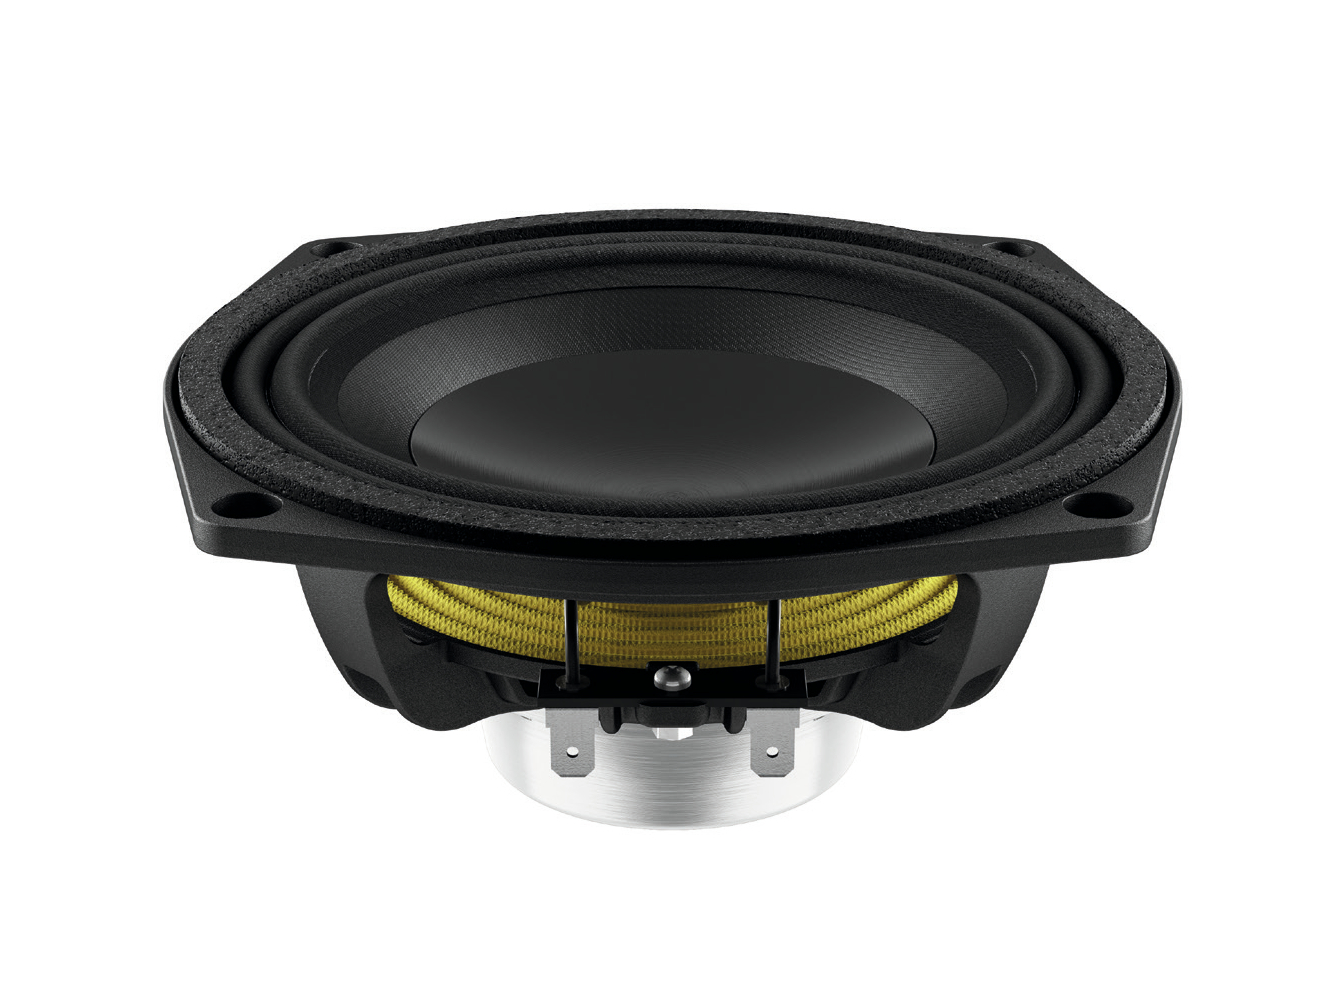 LAVOCE MAN062.00 6,5 Mid-Woofer, Neodym, Alukorb